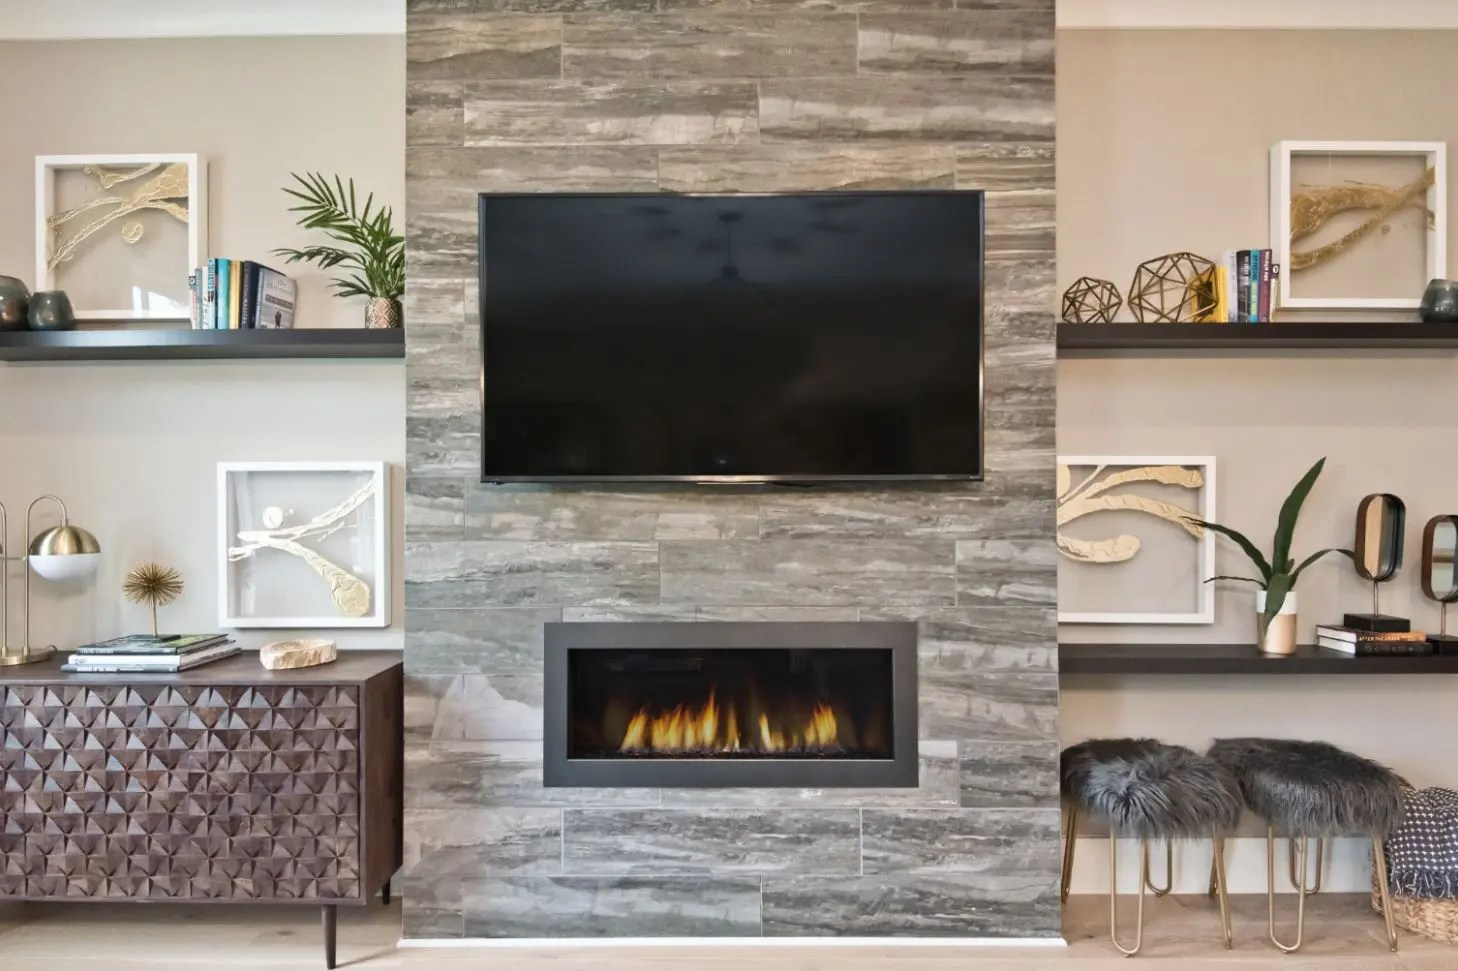 Fireplaces With Stone Surrounding Warm Your Home With Fireplace Decor Brock Built